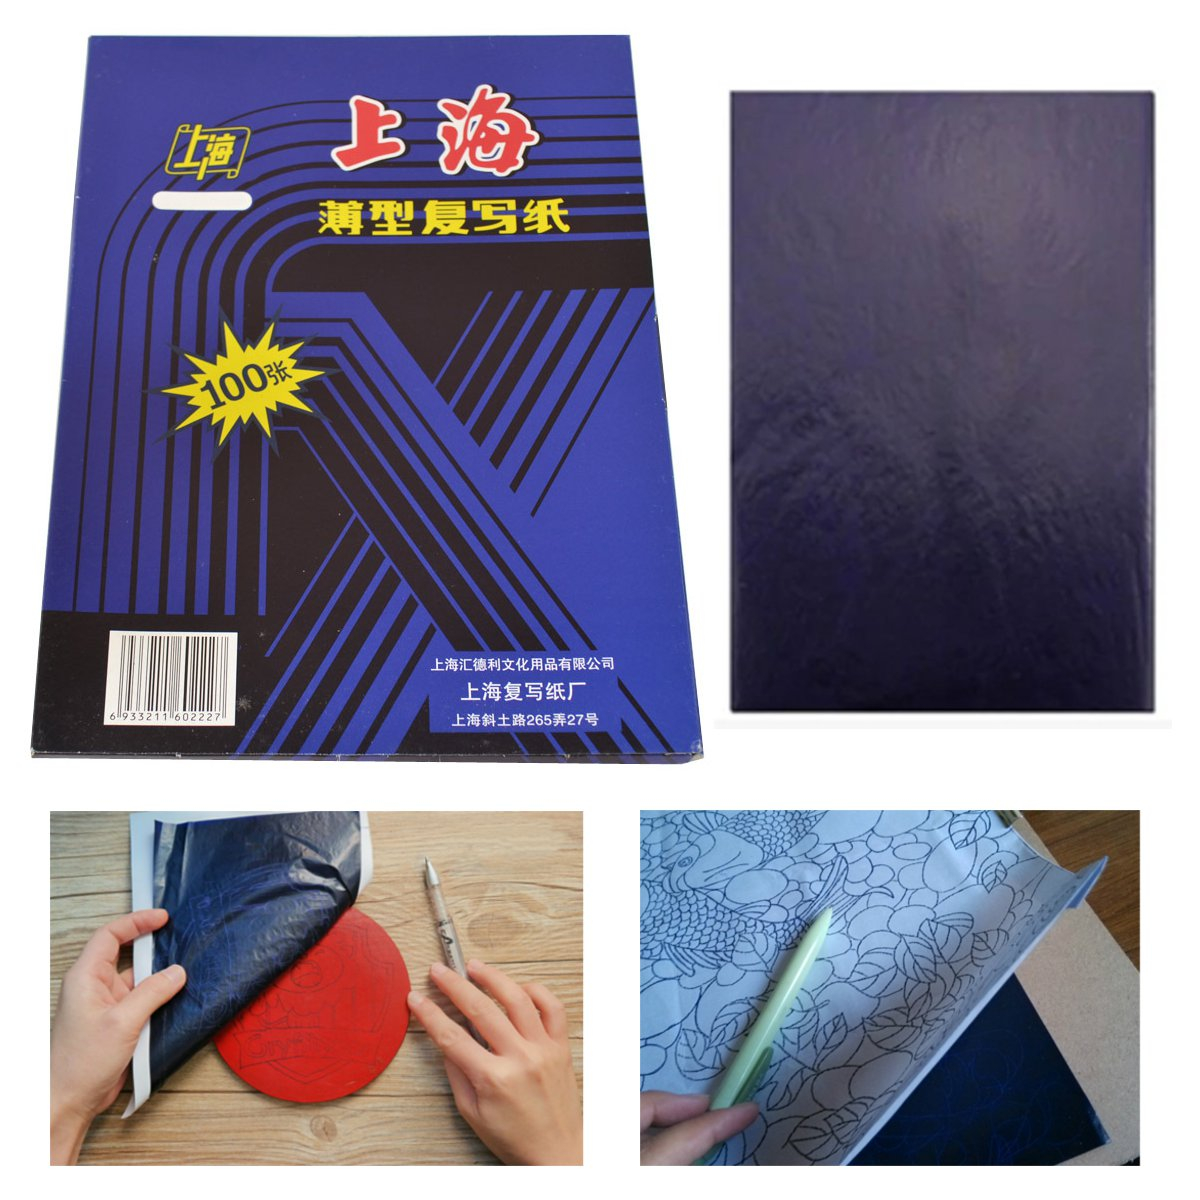 100 Sheets A4 Dark Blue Carbon Hand Copier Stencil Transfer Paper Hectograph Black Carbon Hand Copier Stencil Transfer Paper